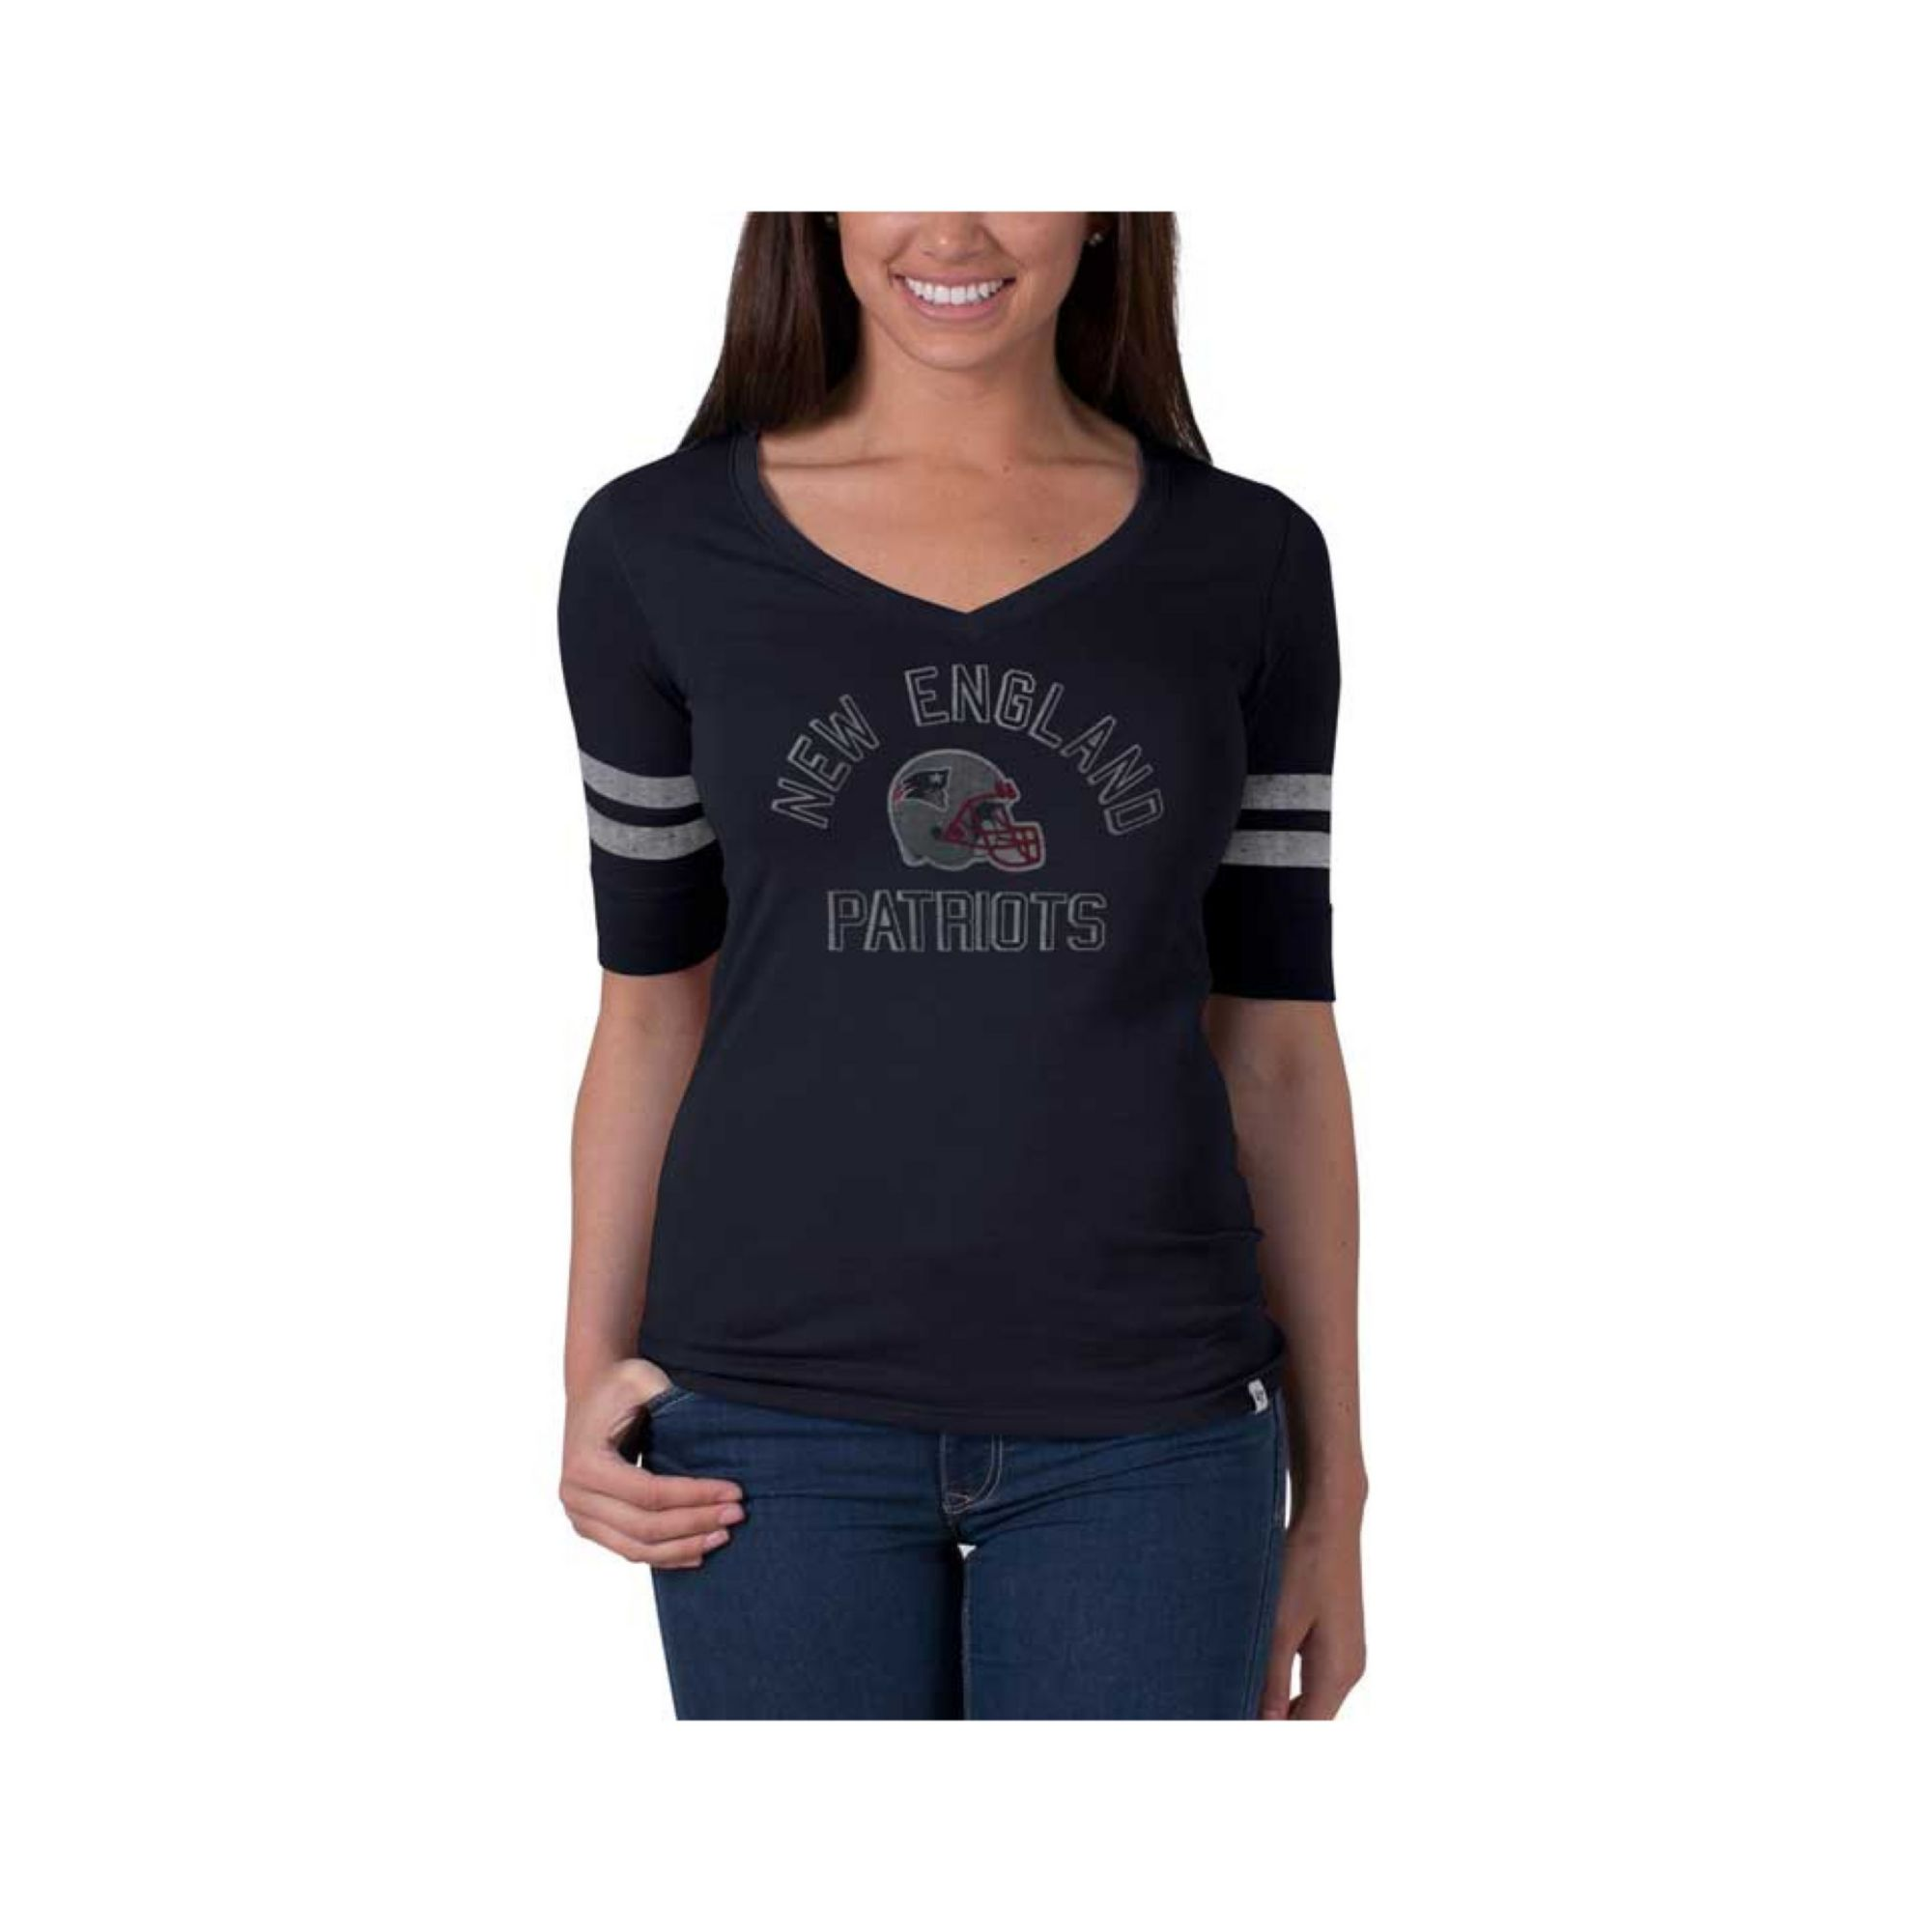 Womens Patriots Clothing